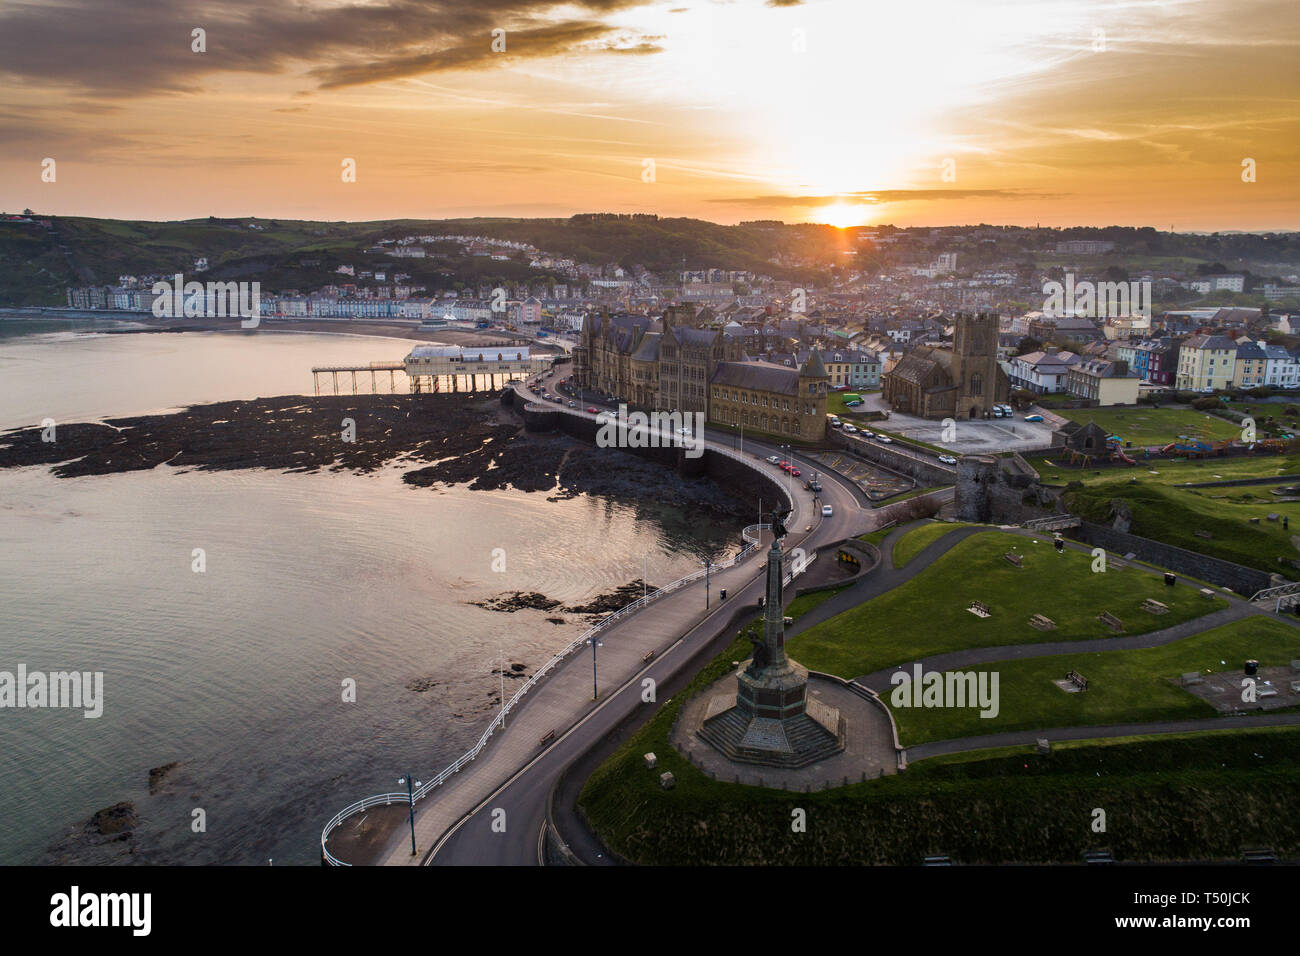 Aberystwyth Wales UK, Easter Saturday, 20 April 2019. UK Weather: Daybreak over the seaside and university town of Aberystwyth on the west wales coast, at the start of Easter Saturday 2019. The weather is again set to be hot and sunny, with temperatures in the low 20's Celsius (low 70's Fahrenheit). Aerial image by CAA approved and licenced drone operator photo Credit: Keith Morris/Alamy Live News - Stock Image